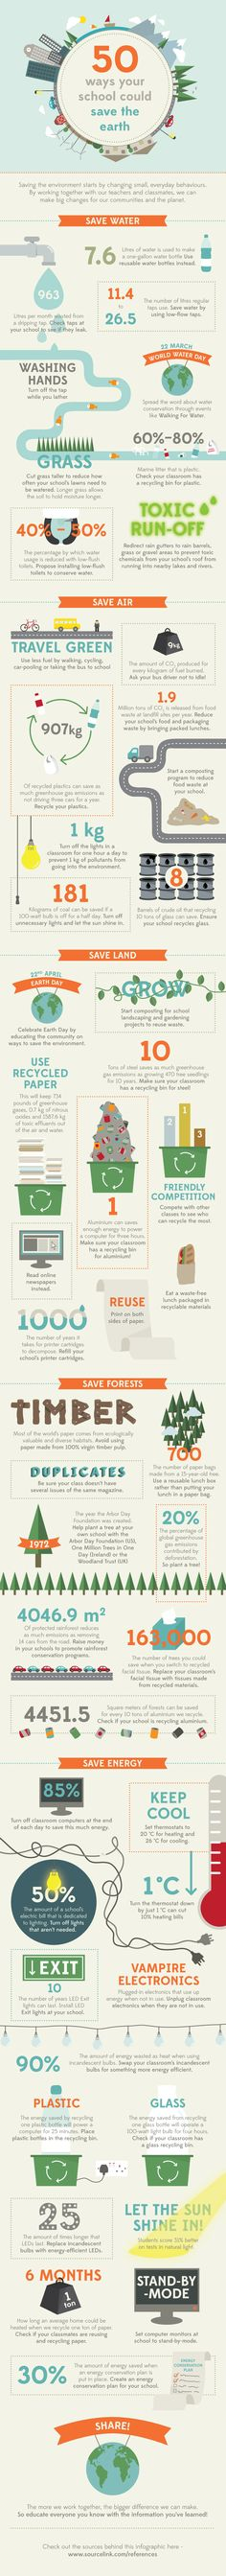 50 Ways Your School Could Save the Earth #infographic #Environment